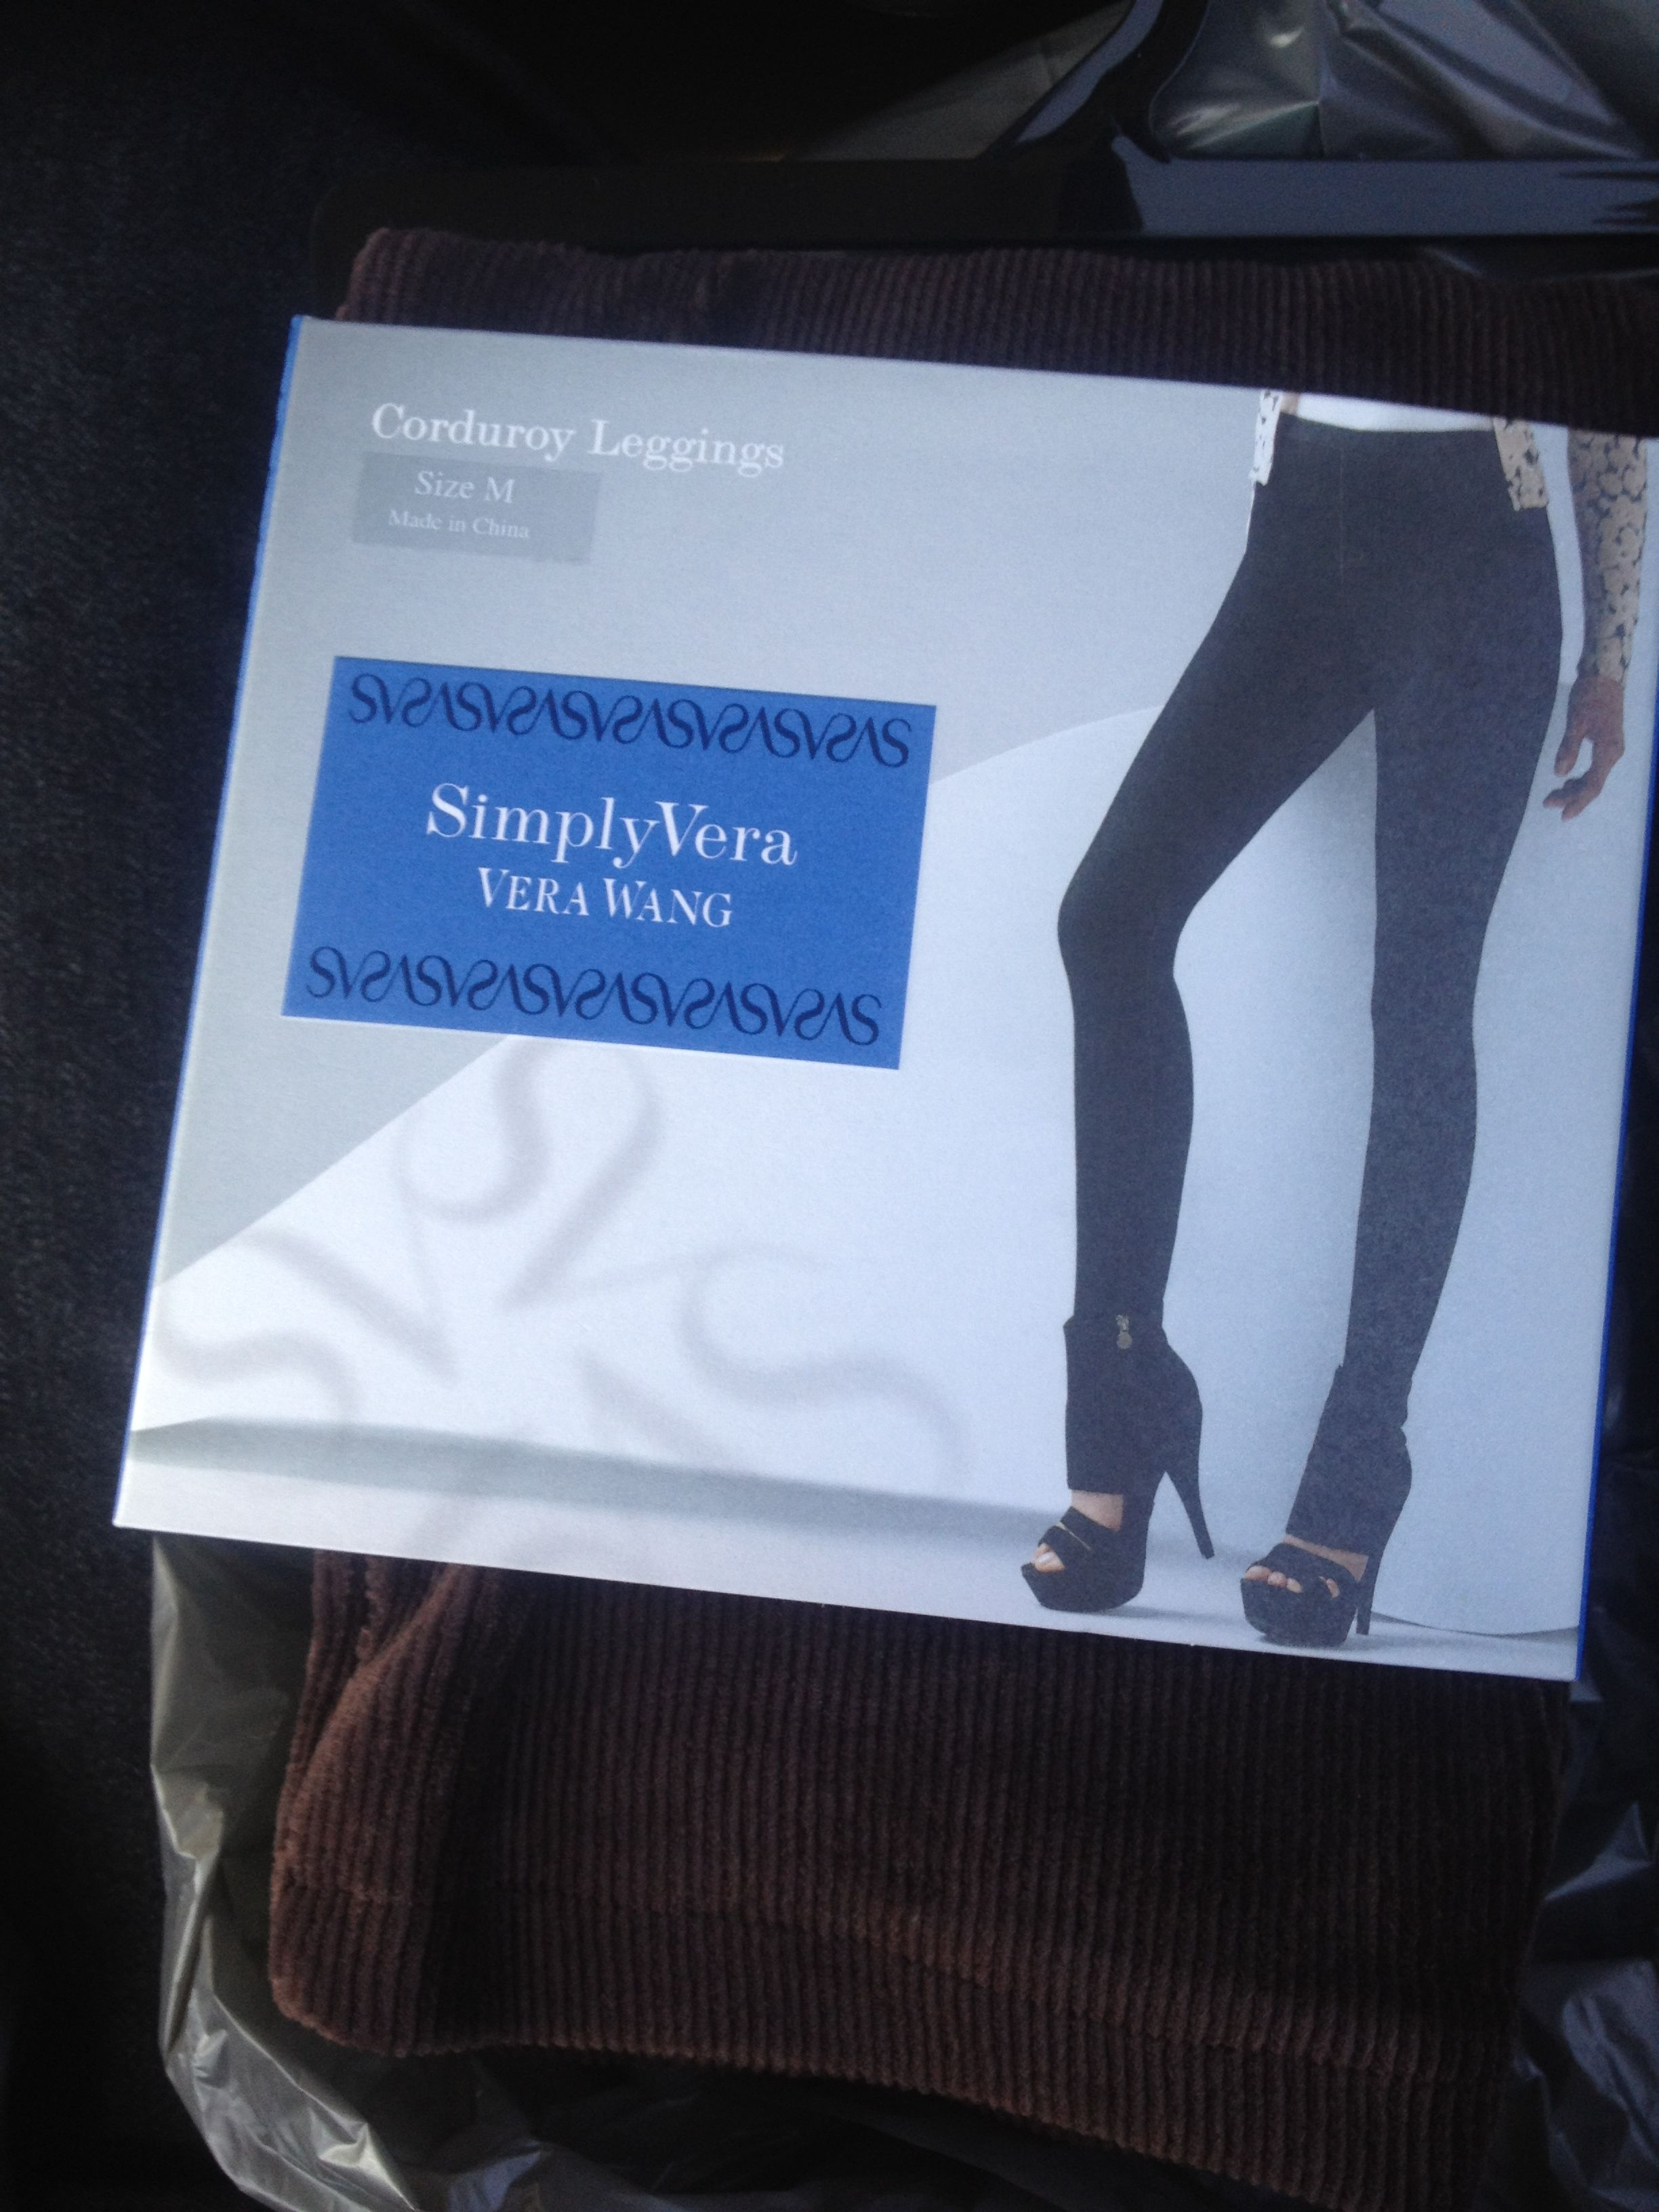 Corduroy #leggings from Vera Wang's SimplyVera!  Banded waist, front fly stitching, real back pockets, & denim inspired stitching. www.fromgirltogirl.com . $24.81